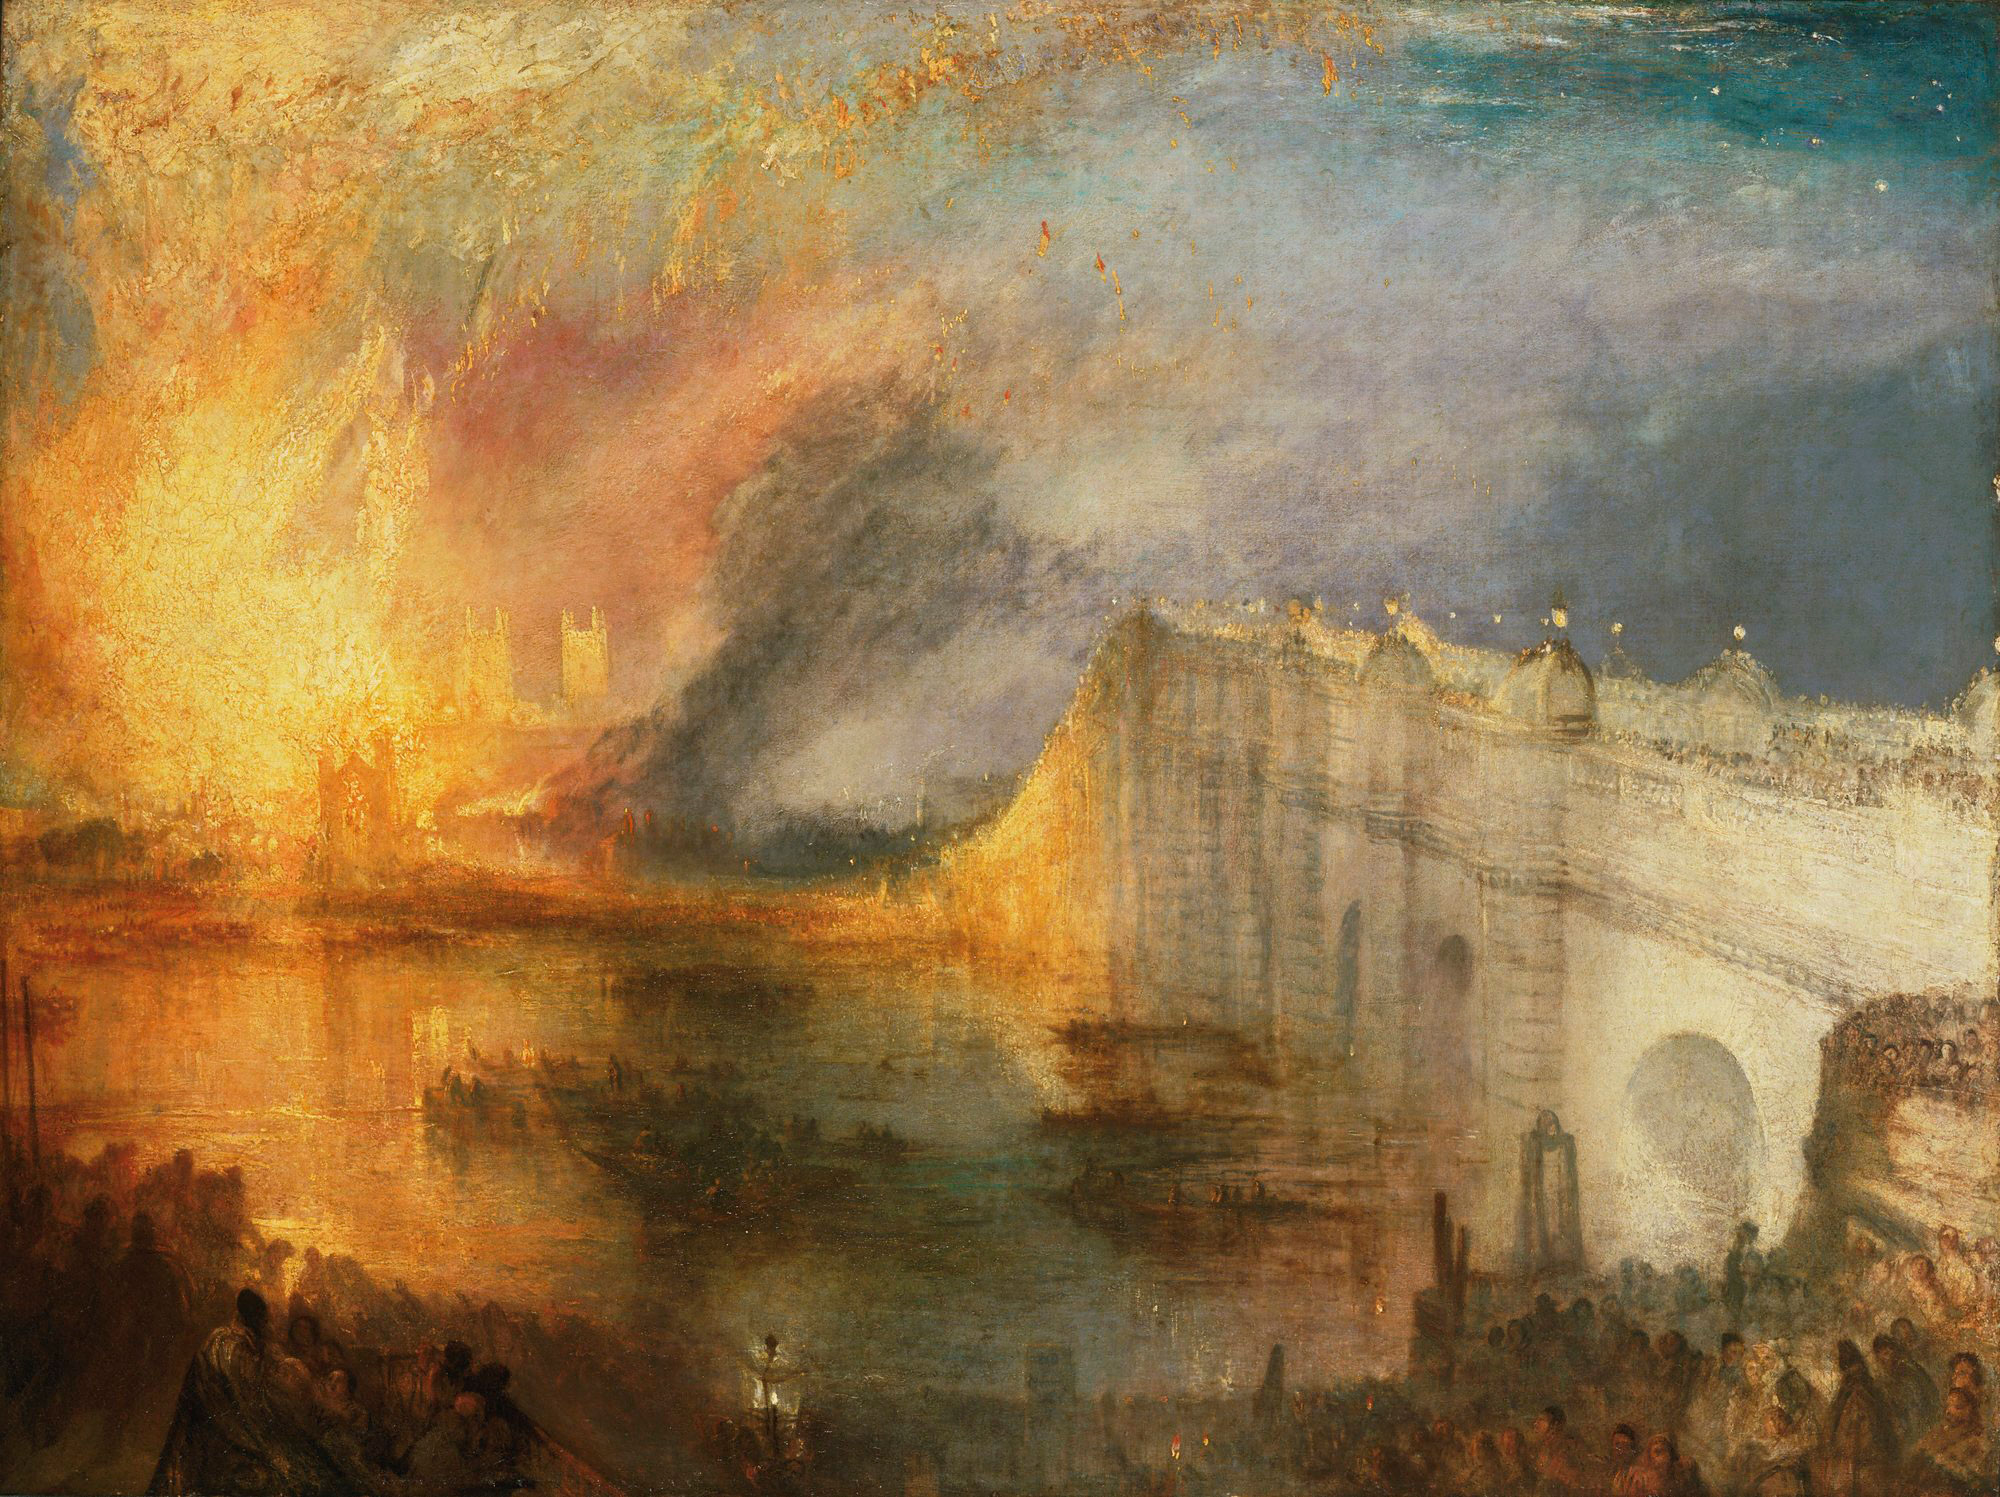 Turner-Burning-PhilaMusArt.jpg